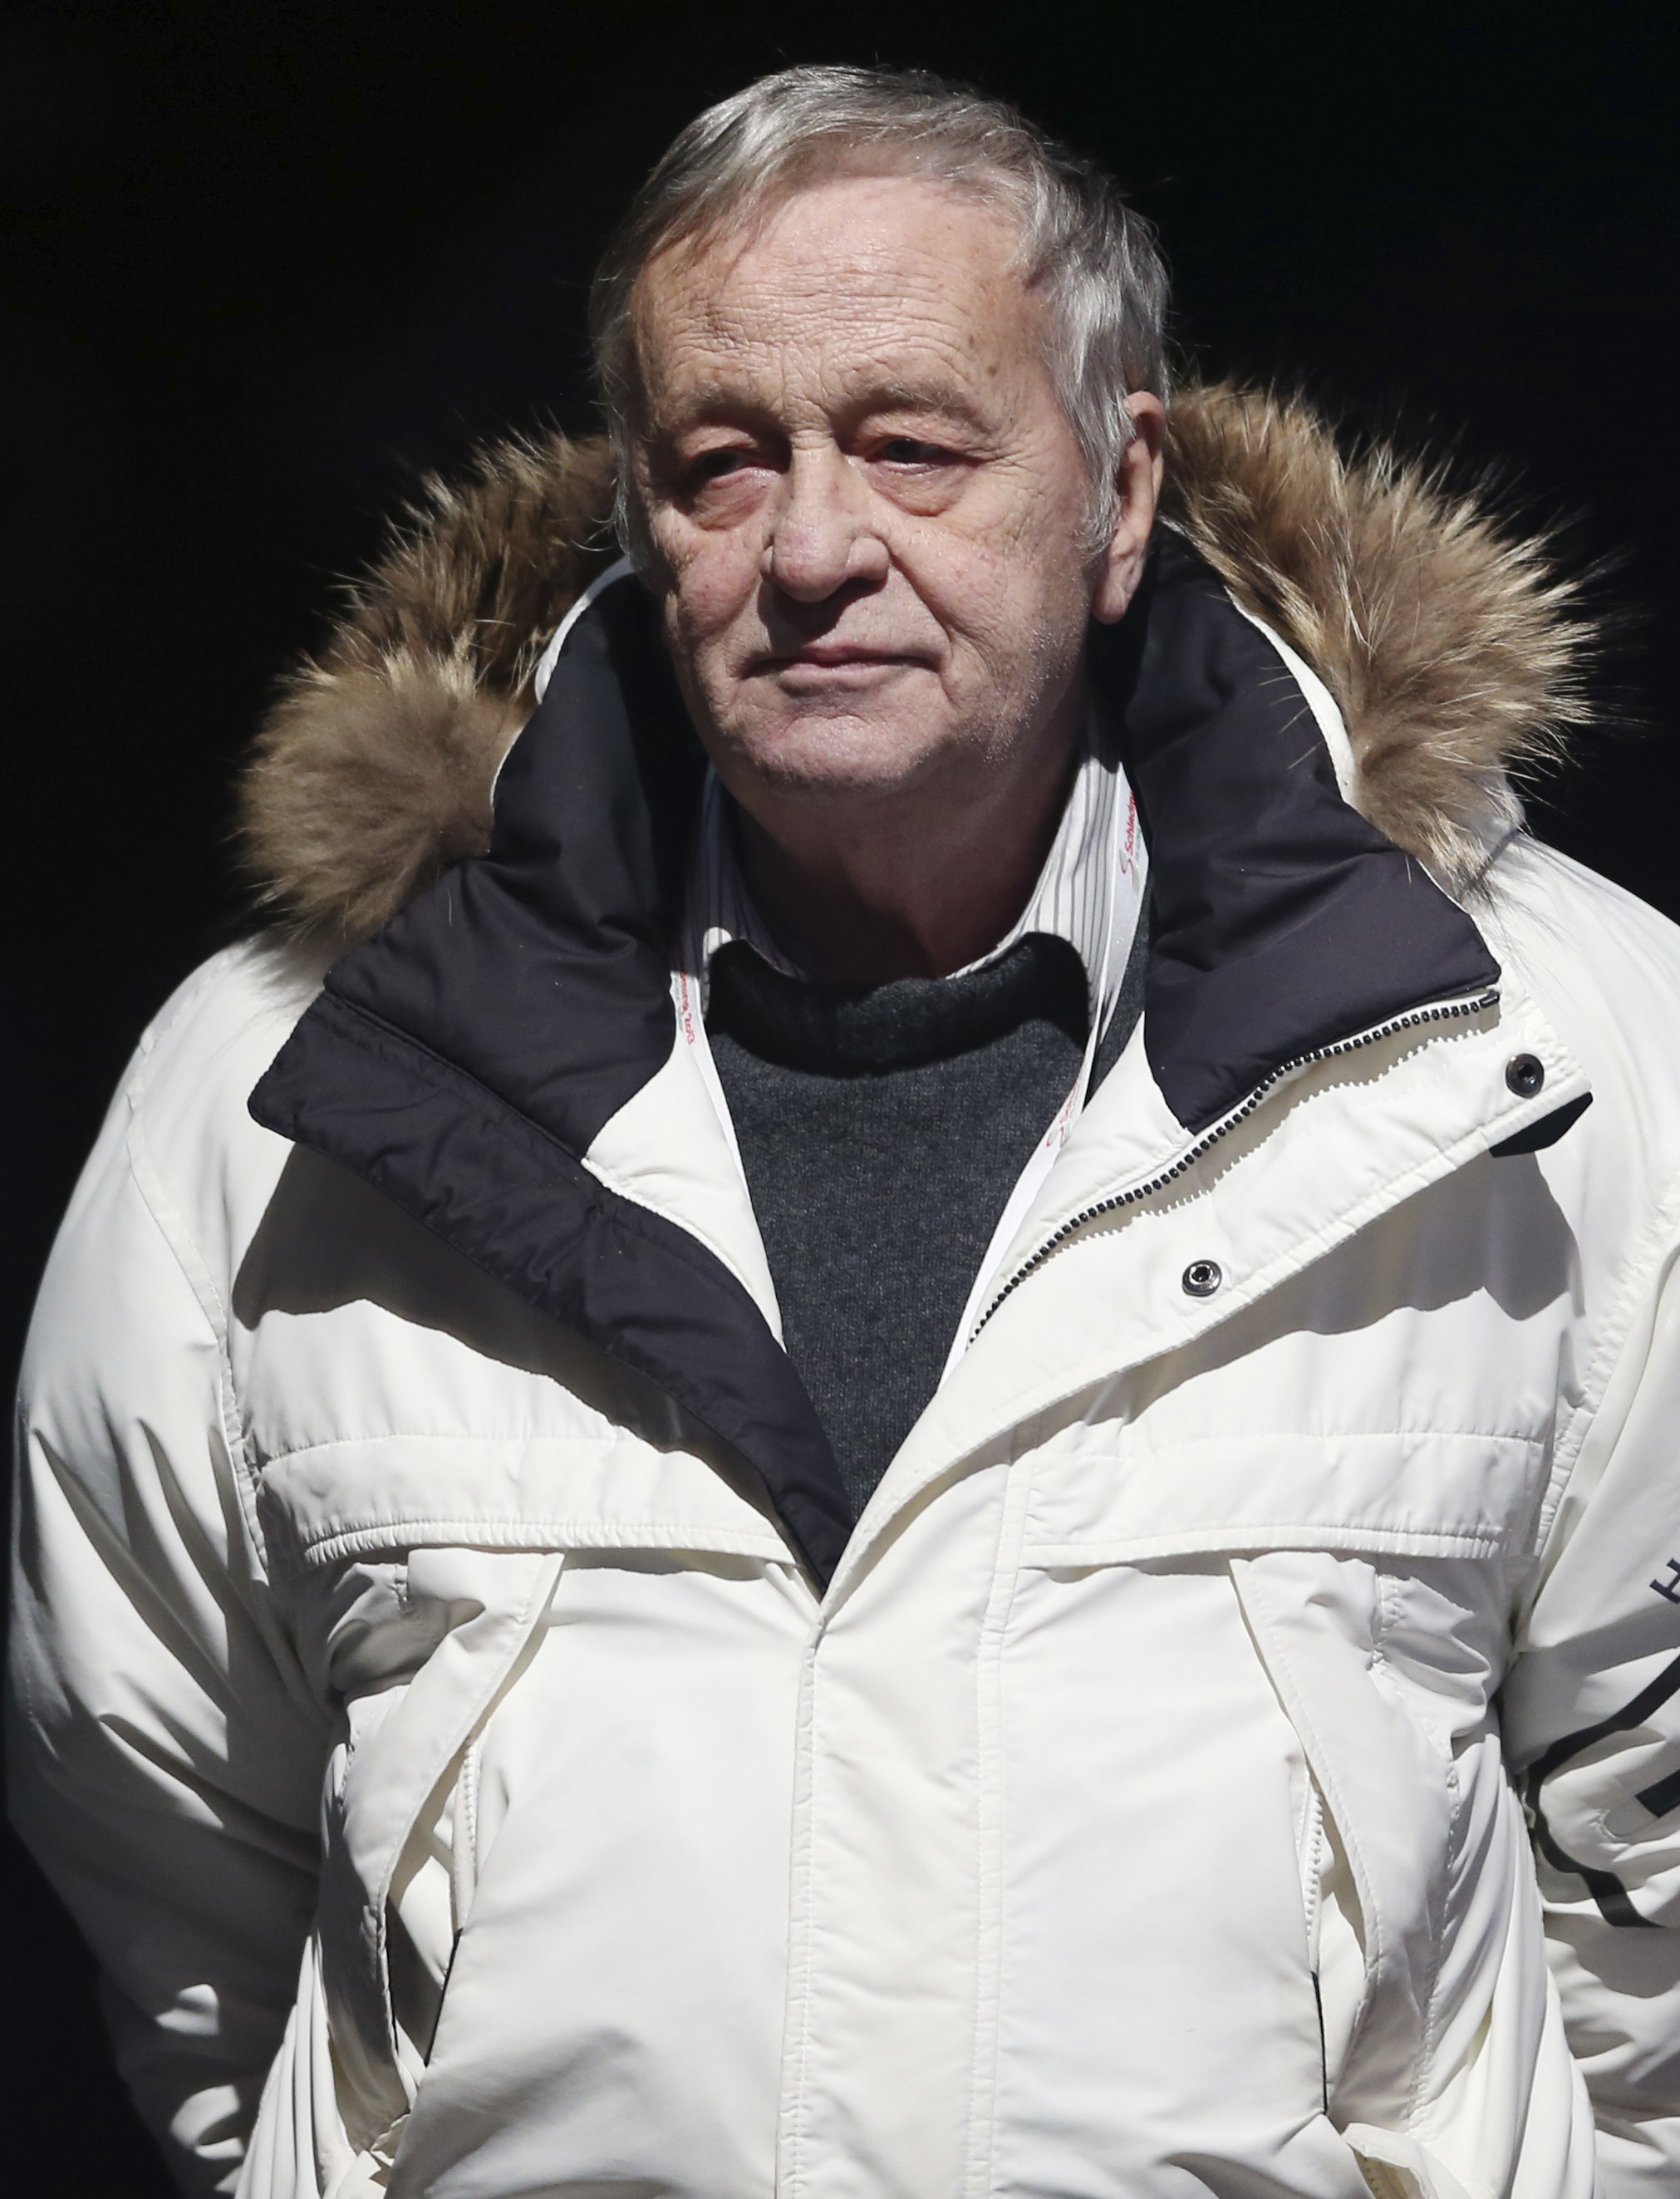 FILE - The Feb. 6, 2013 file photo shows the President of the International Ski Federation Gian Franco Kasper watching a medal ceremony after the men's super-G, at the Alpine skiing world championships in Schladming, Austria. IOC board member Kasper apolo